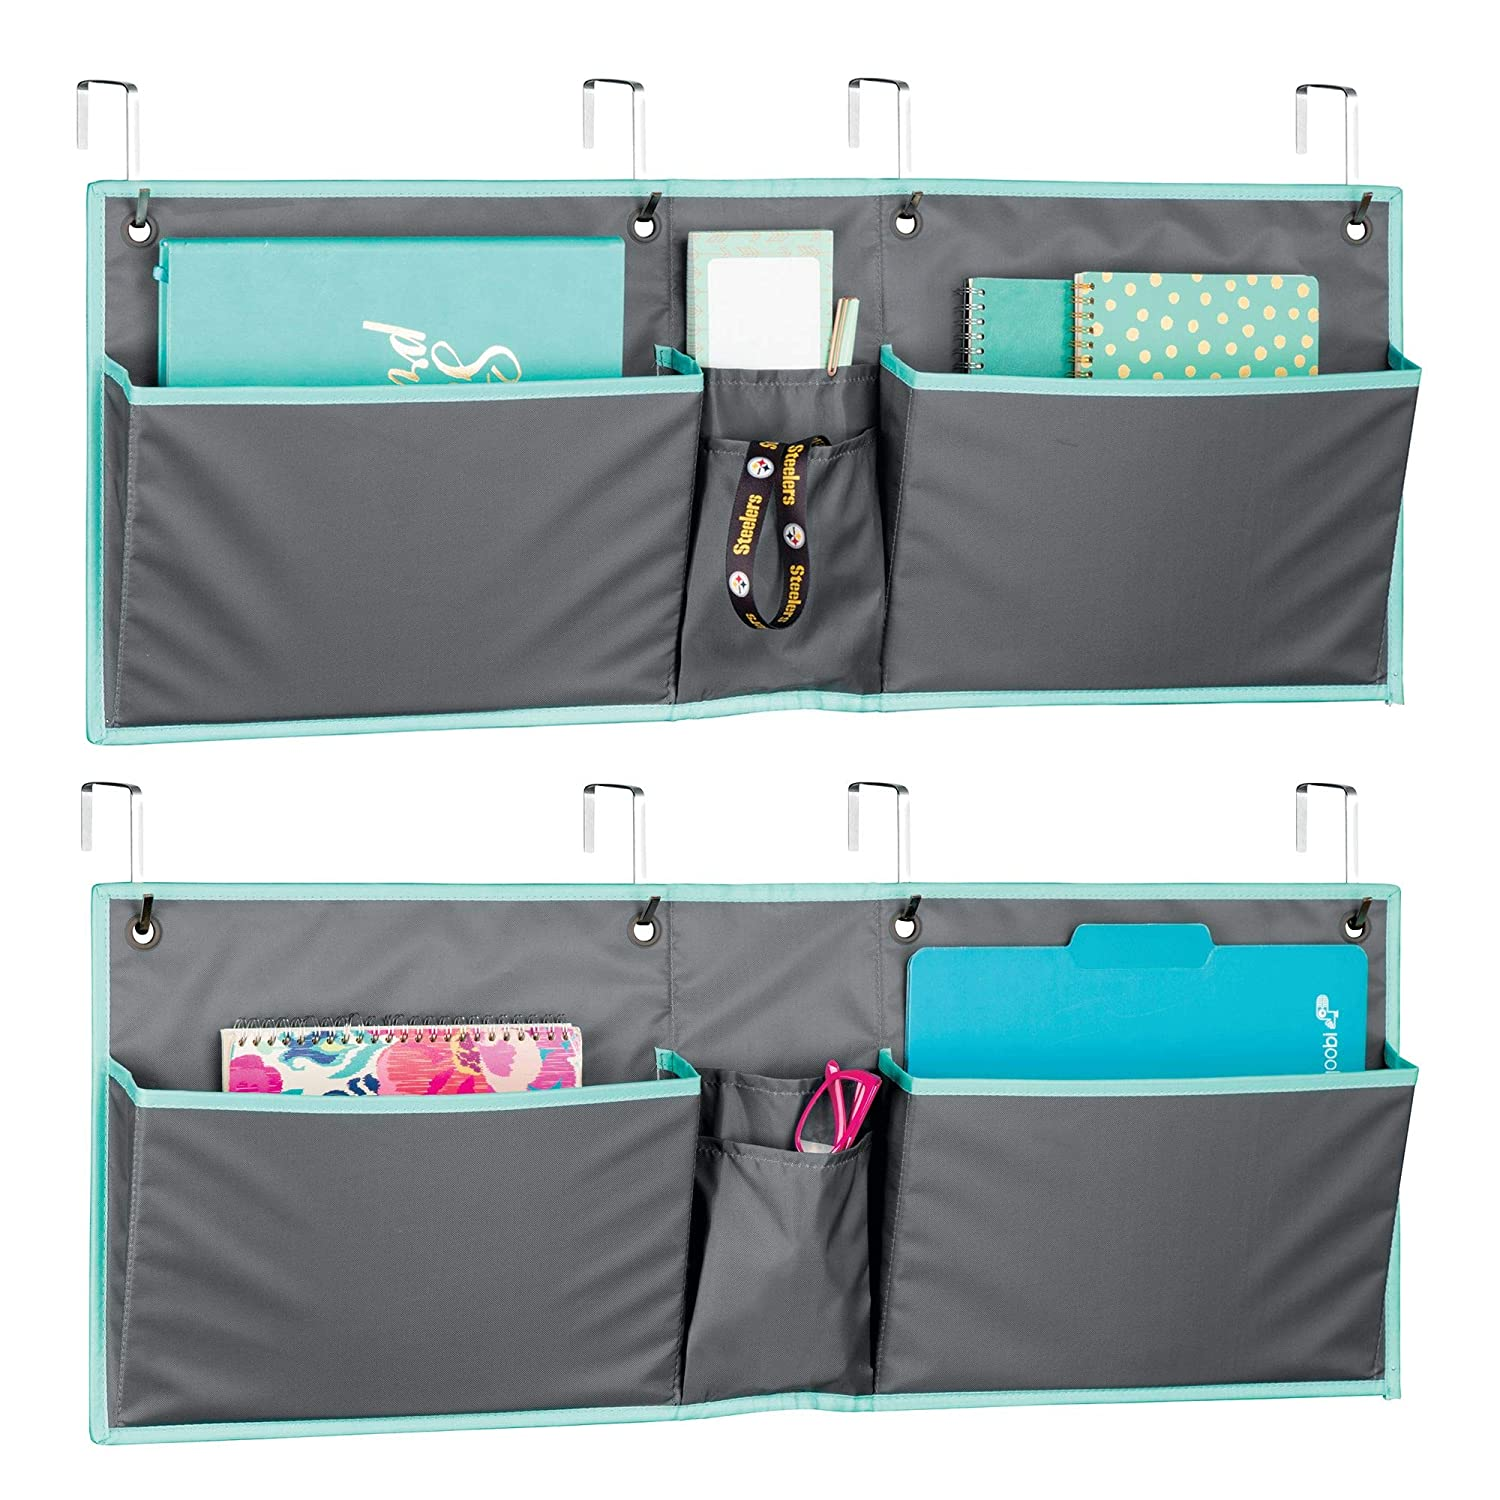 mDesign Soft Fabric Wide Over The Door Hanging Storage Organizer - 4 Pockets in 2 Sizes - Horizontal Office Center Home Office, Work Cubicle - Hooks Included, Pack of 2, Gray/Teal Blue MetroDecor 02361MDO